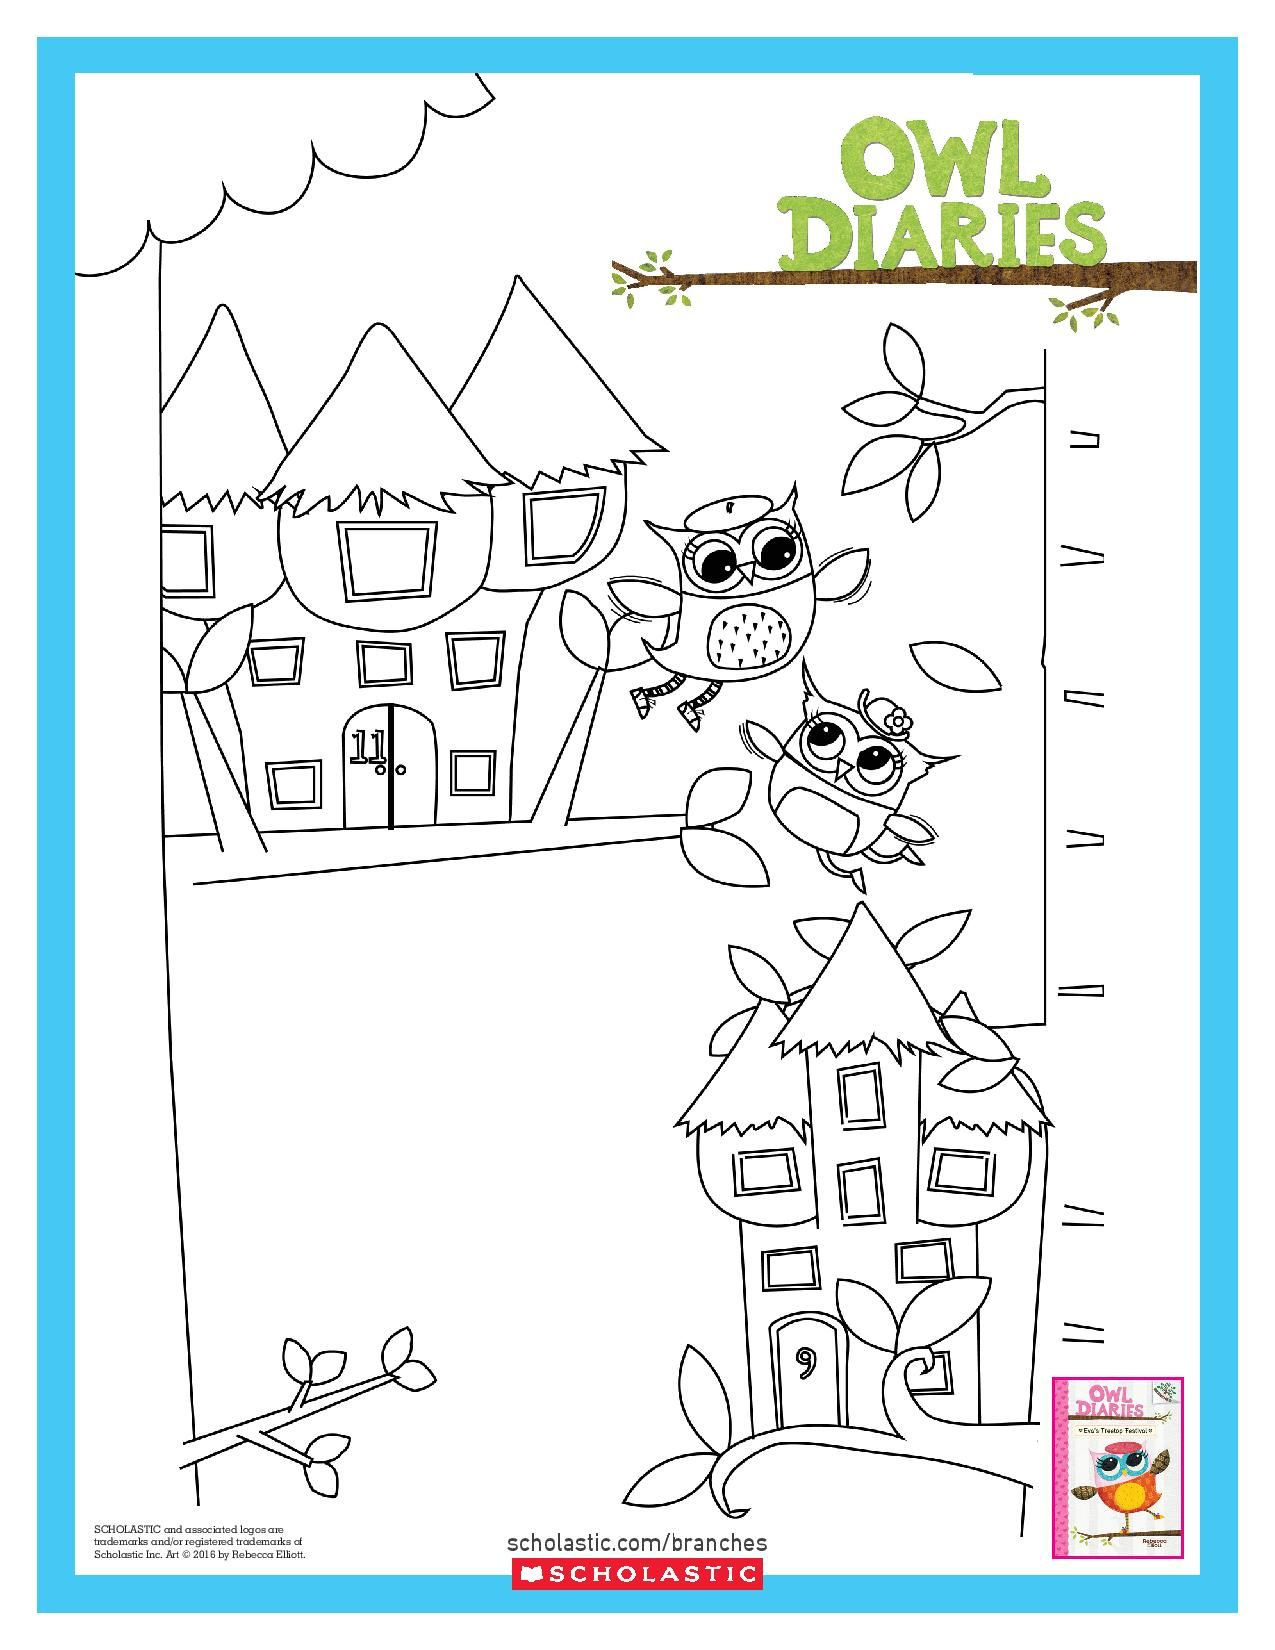 Color Eva And Her Treetop Home In This Scholasticbranches Coloring Sheet For Owl Diaries Classroom Crafts Book Party Diary Book